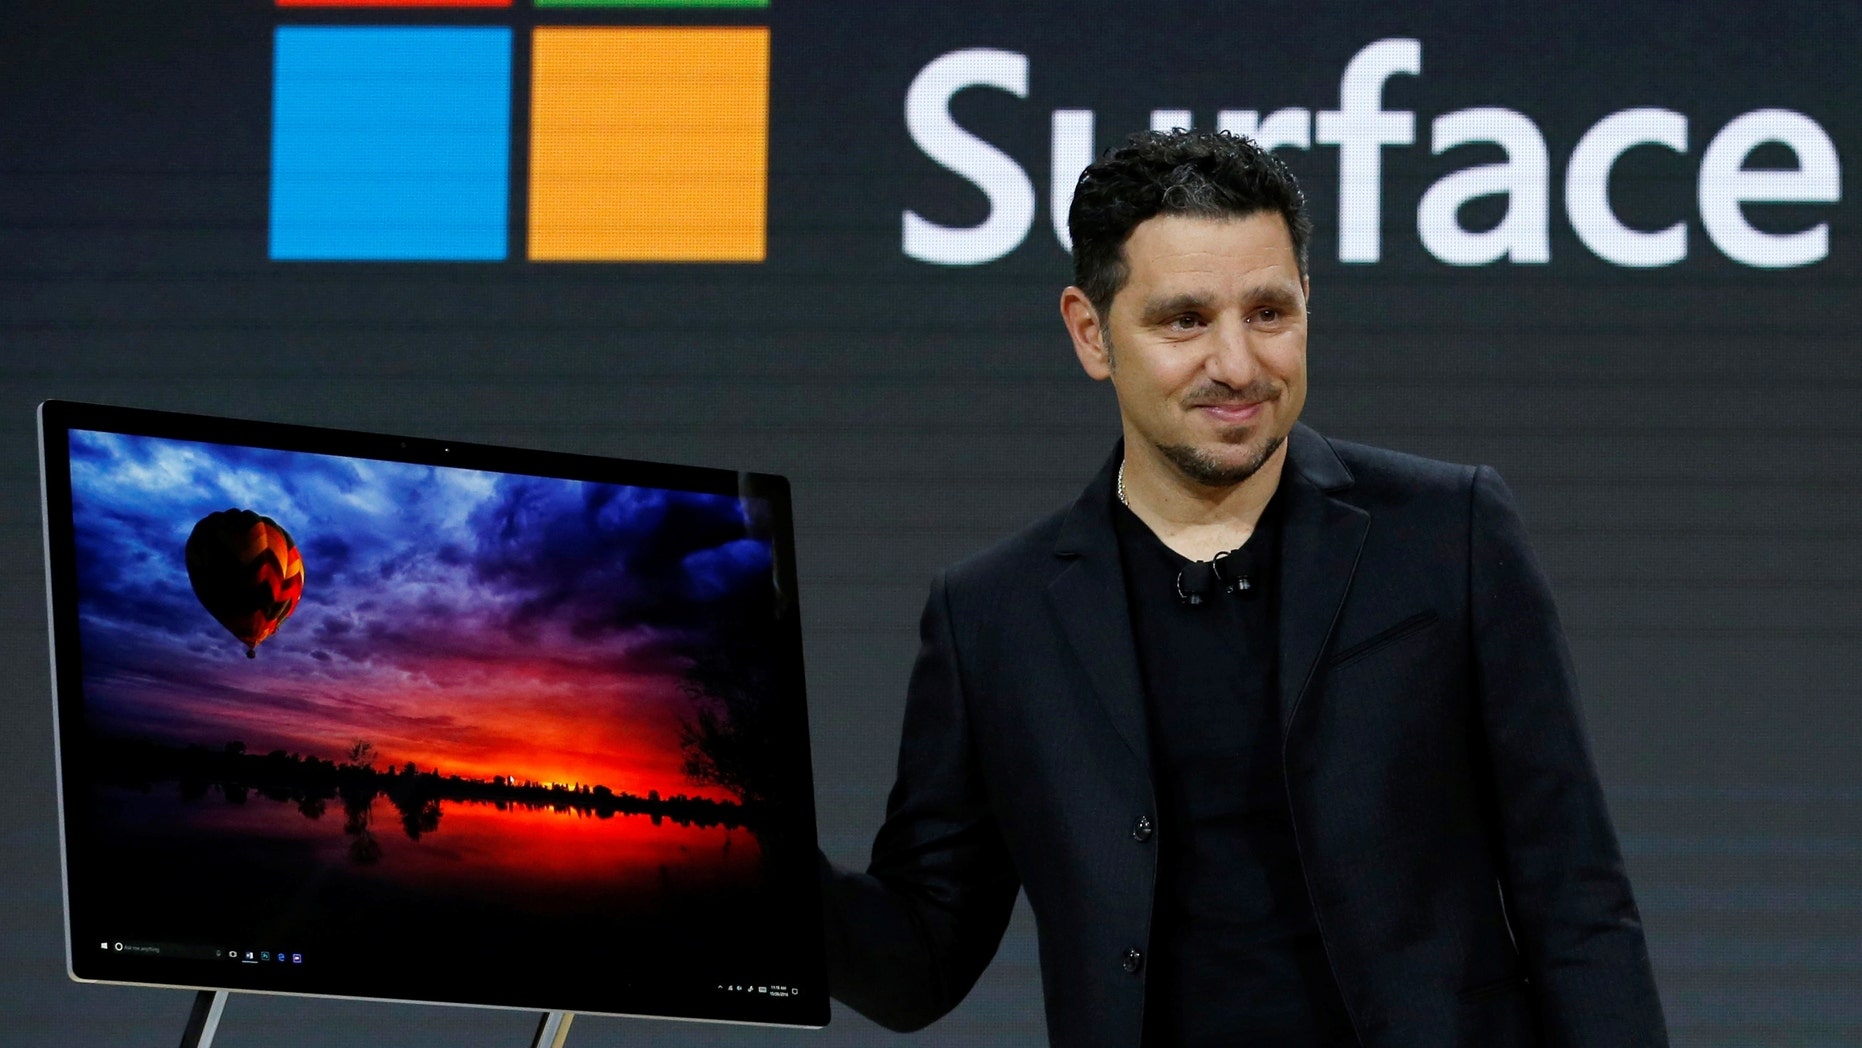 Panos Panay, Corporate Vice President for Surface Computing demonstrates the new Microsoft Surface Studio computer at a live event in the Manhattan borough of New York City, Oct. 26, 2016. (REUTERS/Lucas Jackson)